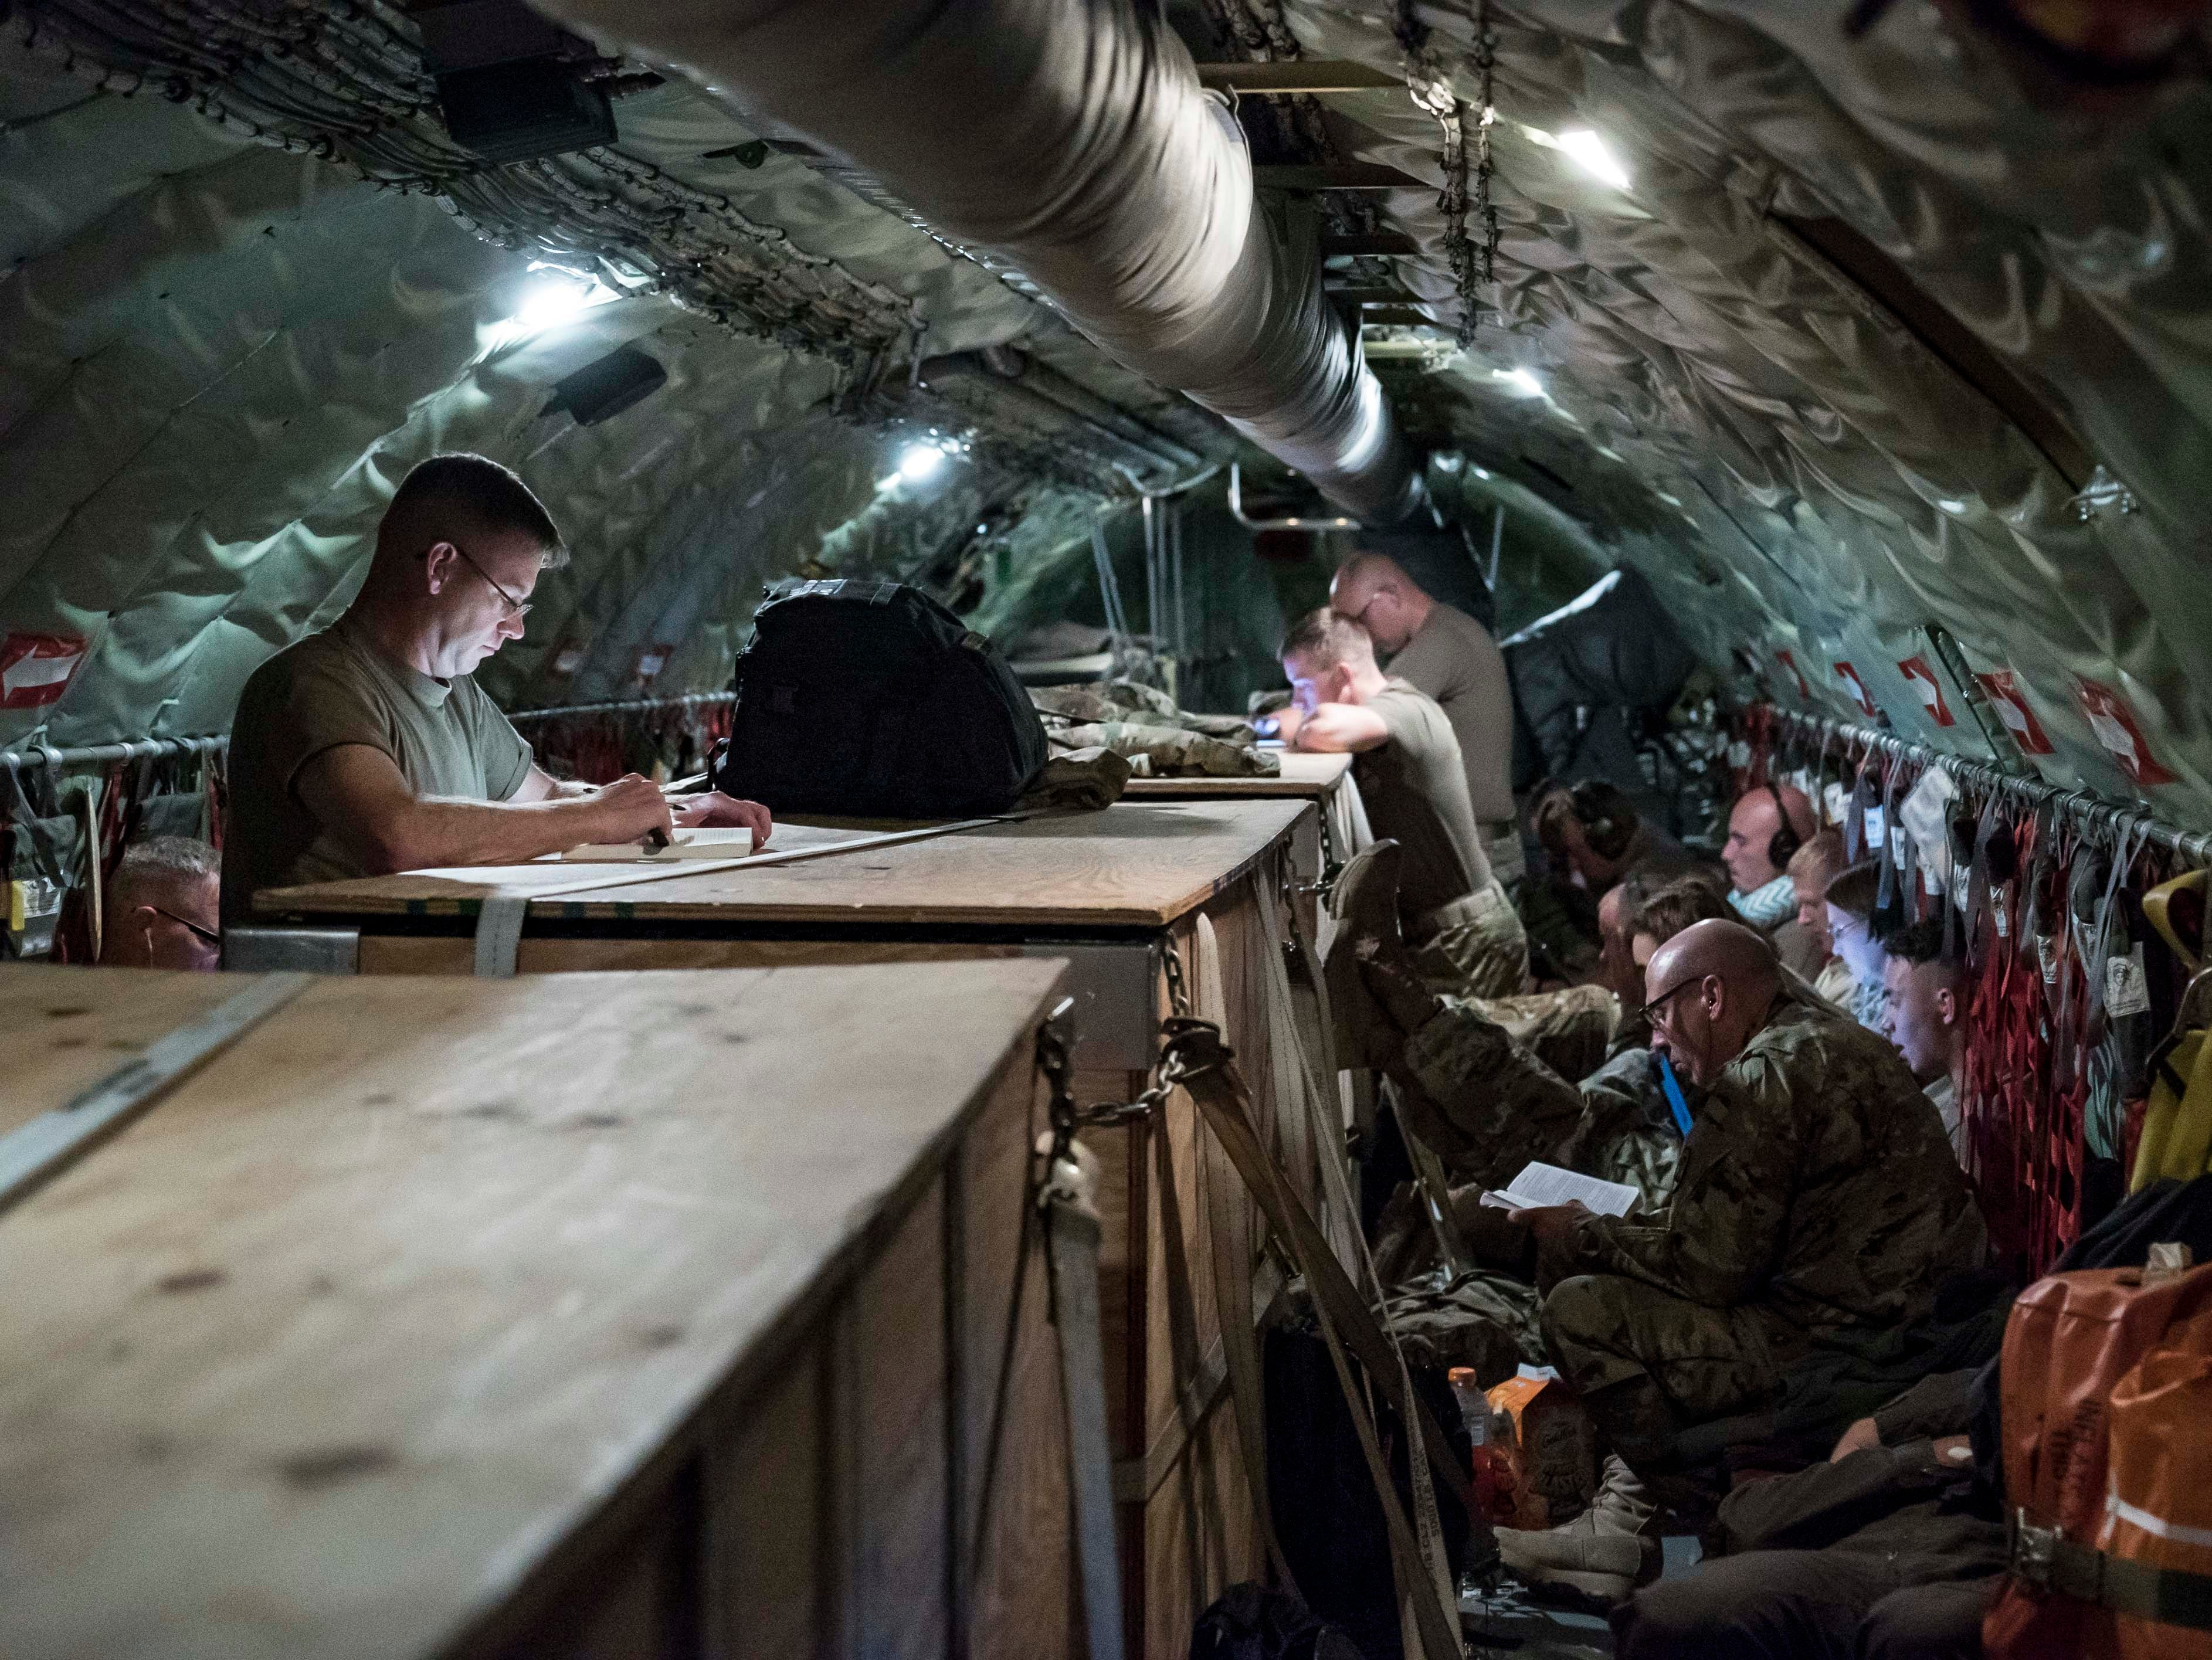 Iowa National Guardsmen read, watch videos or slept during the flight to Kosovo, Sept. 16, 2018, in a KC-135E Stratotanker on the 10-hour direct trip.